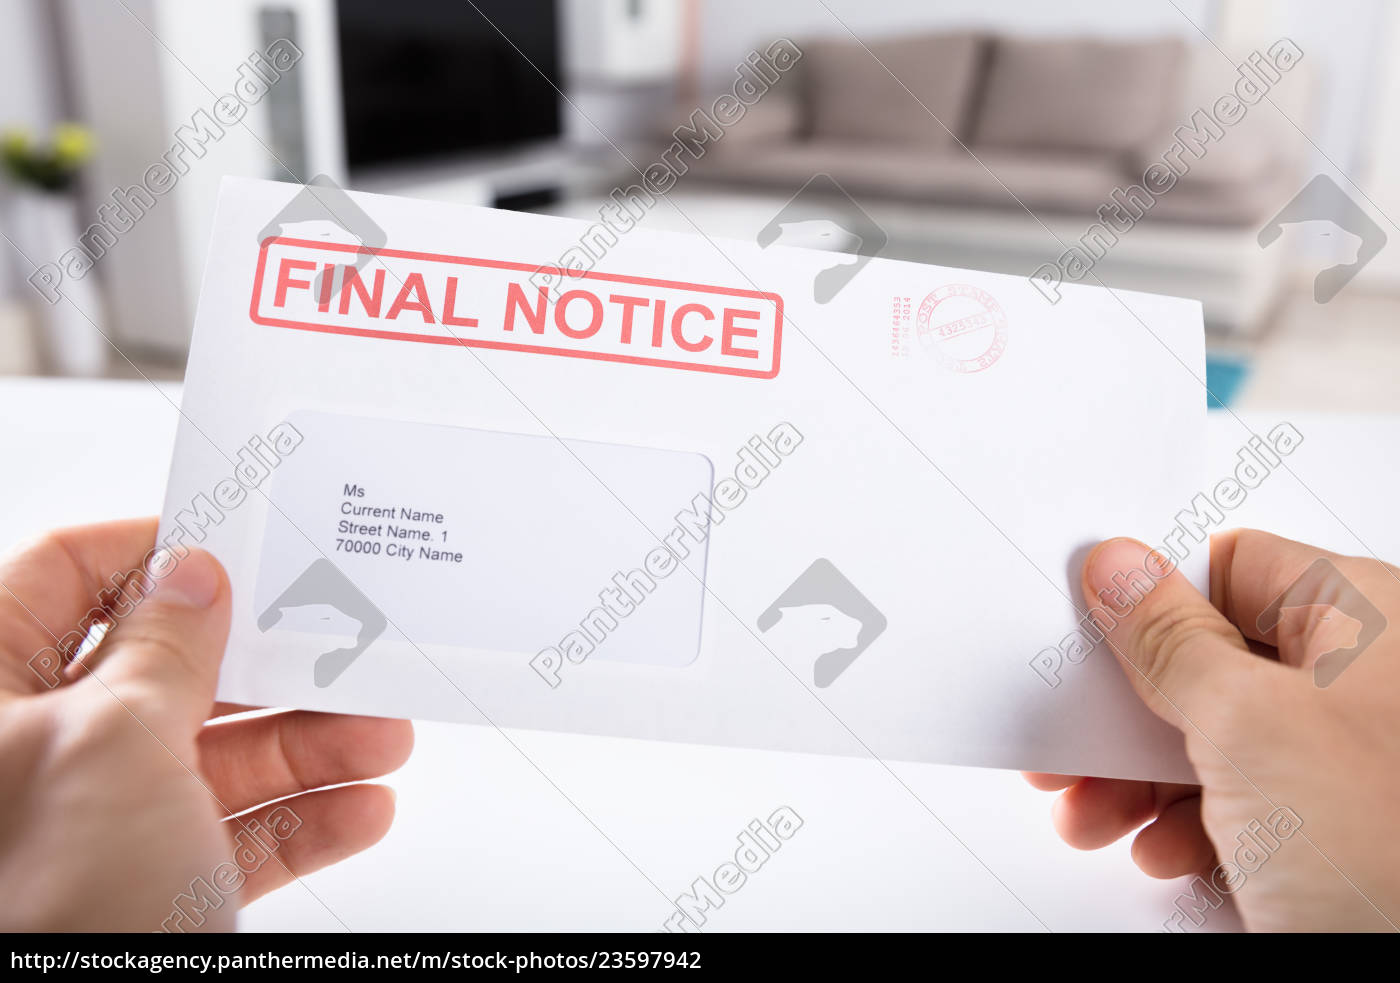 person, holding, final, notice, envelope - 23597942